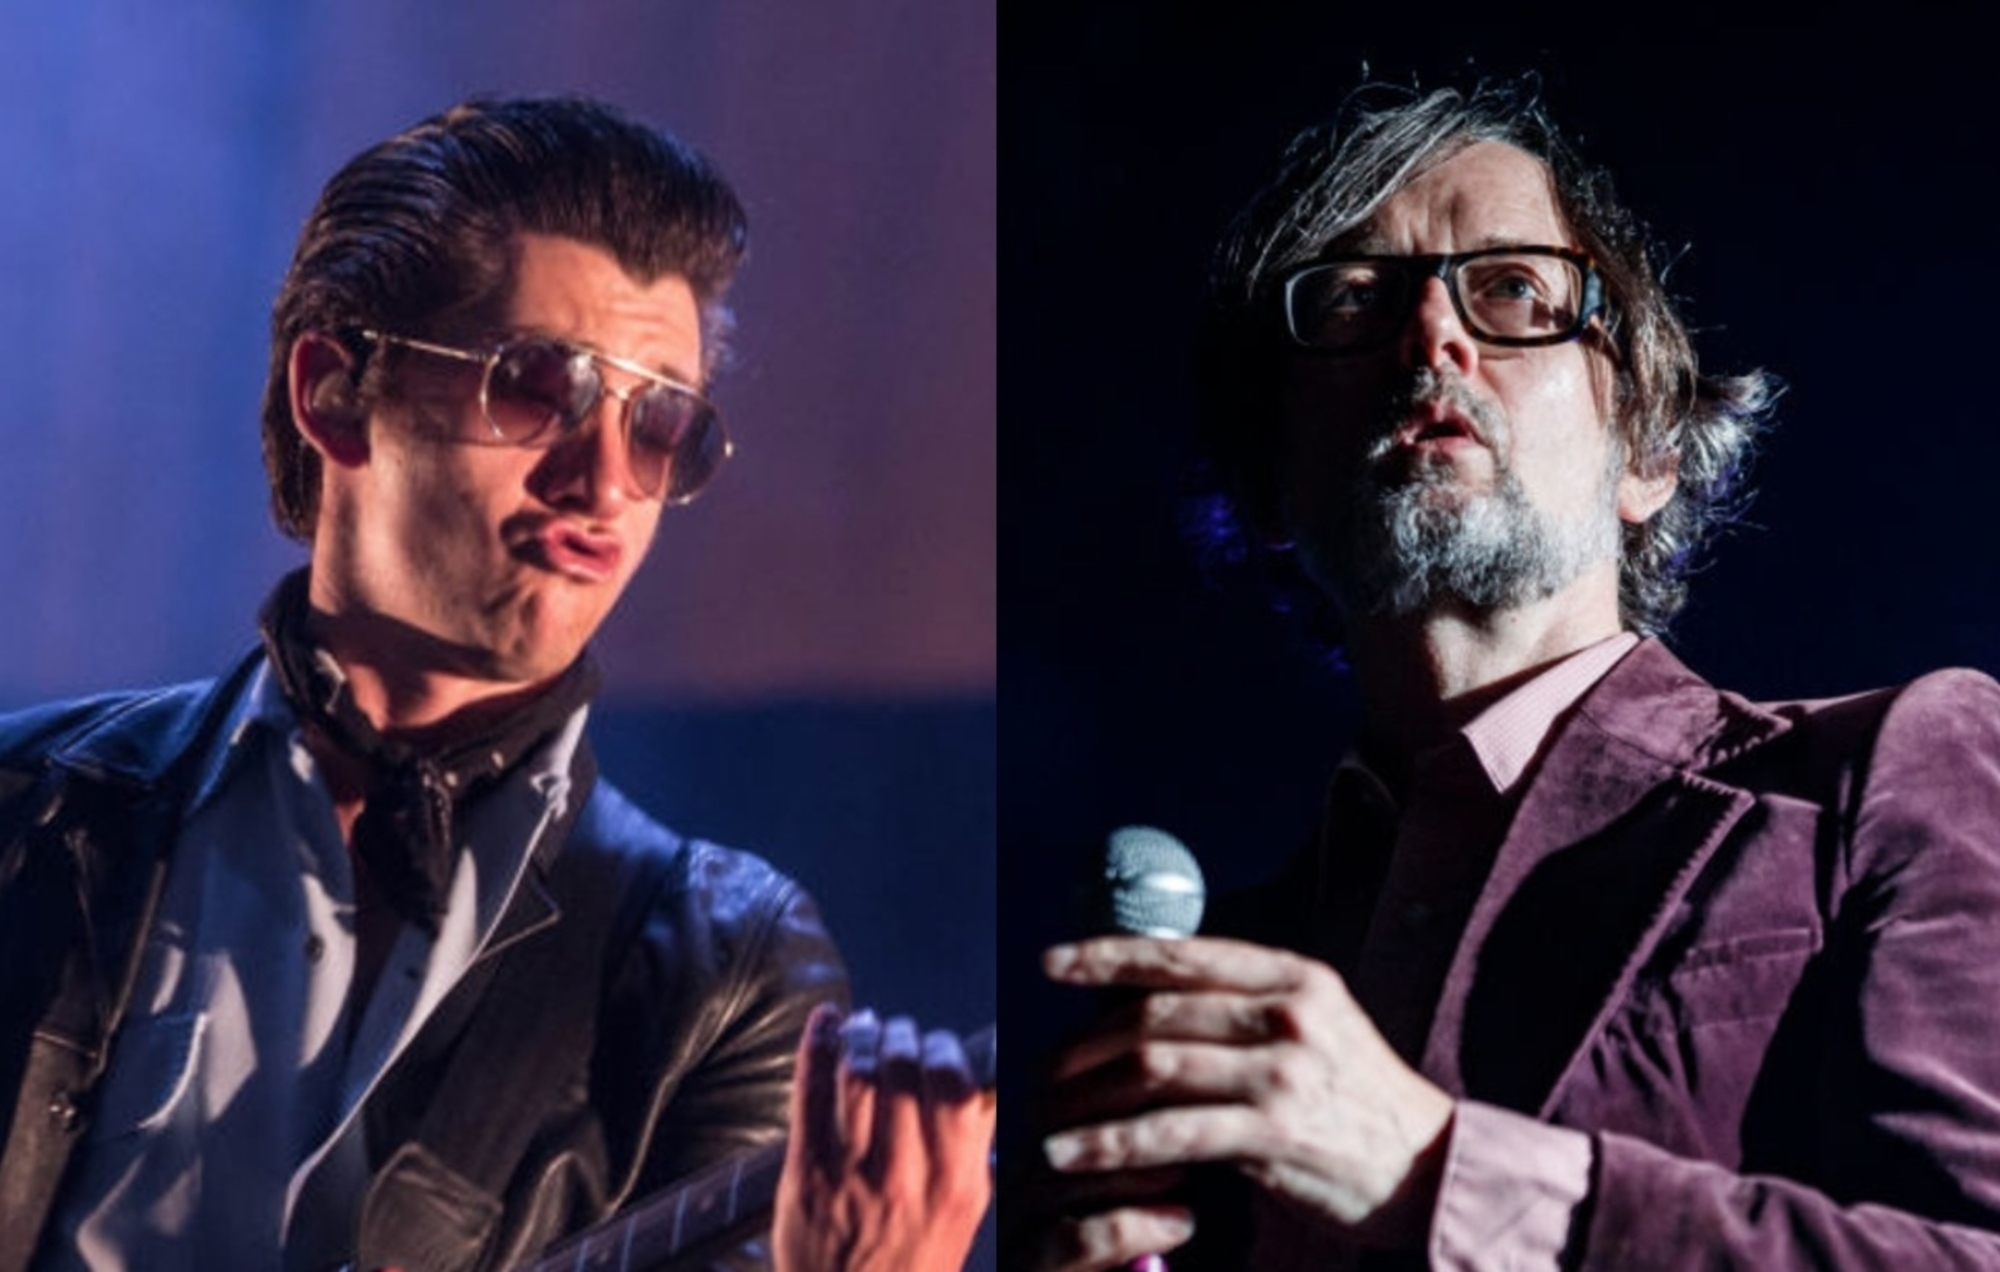 Acclaimed play featuring music by Arctic Monkeys, Jarvis Cocker and more now streaming online